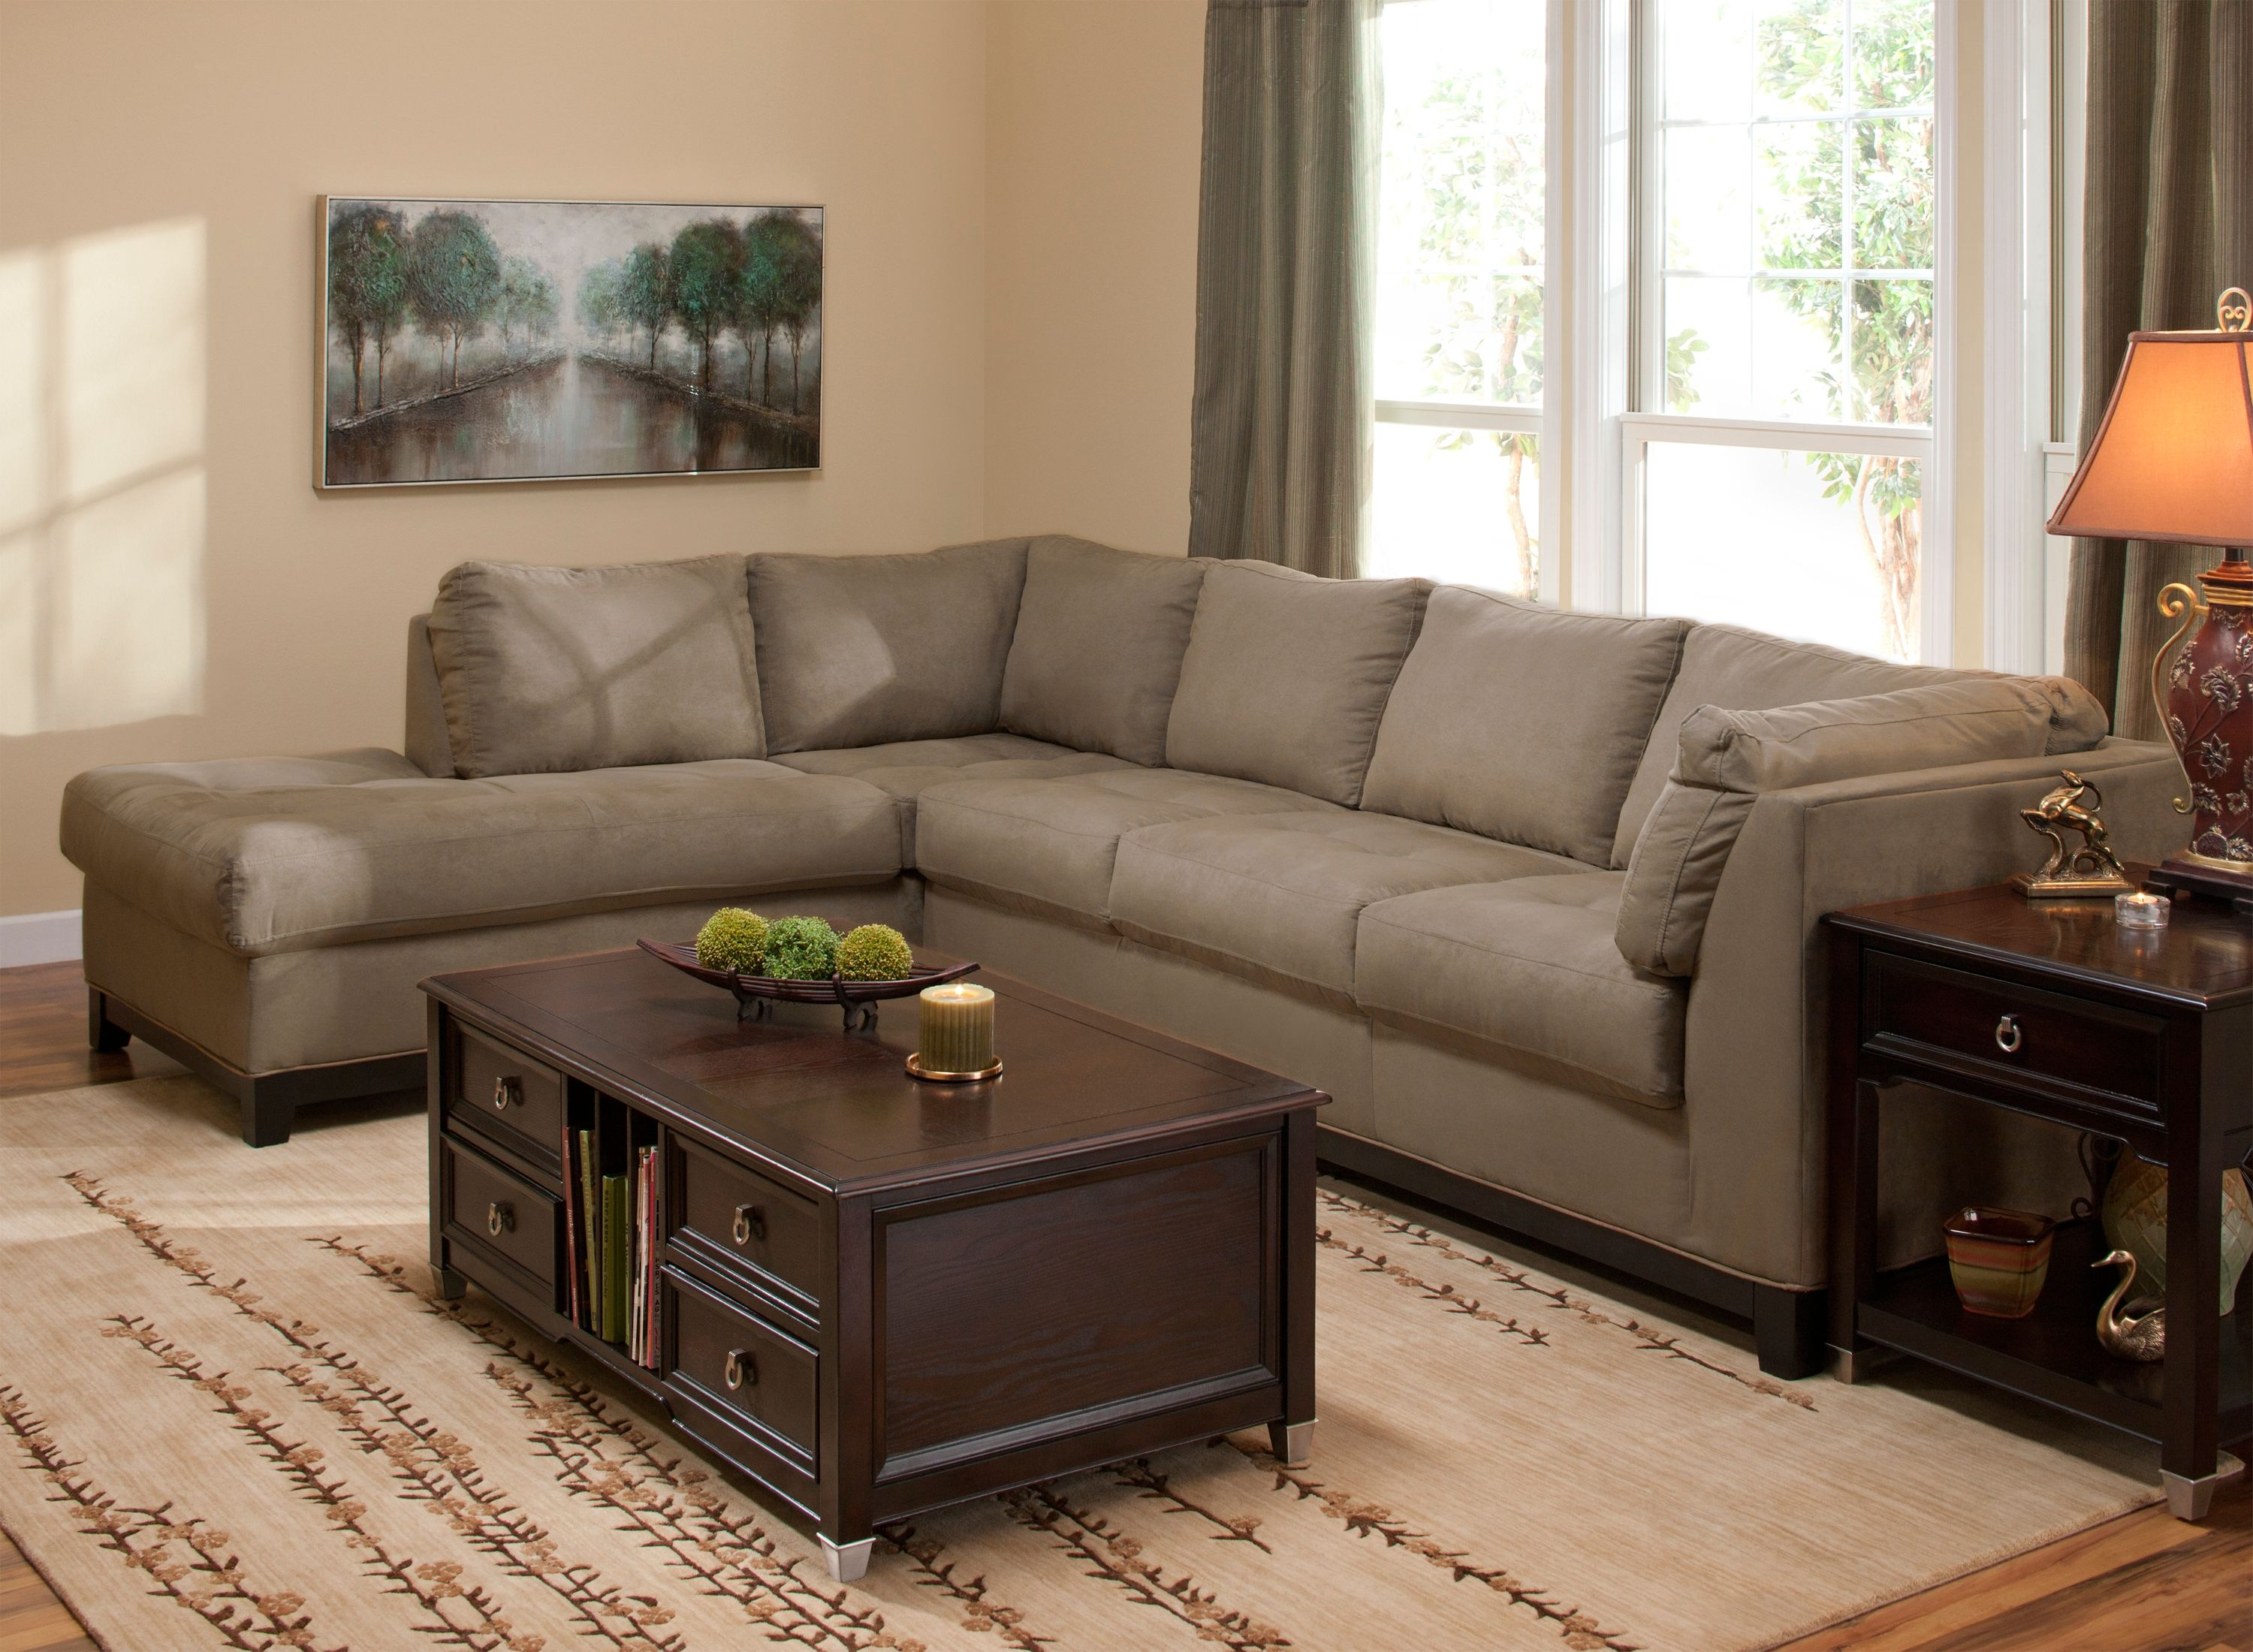 This contemporary kathy ireland Home Wellsley 2 piece ...